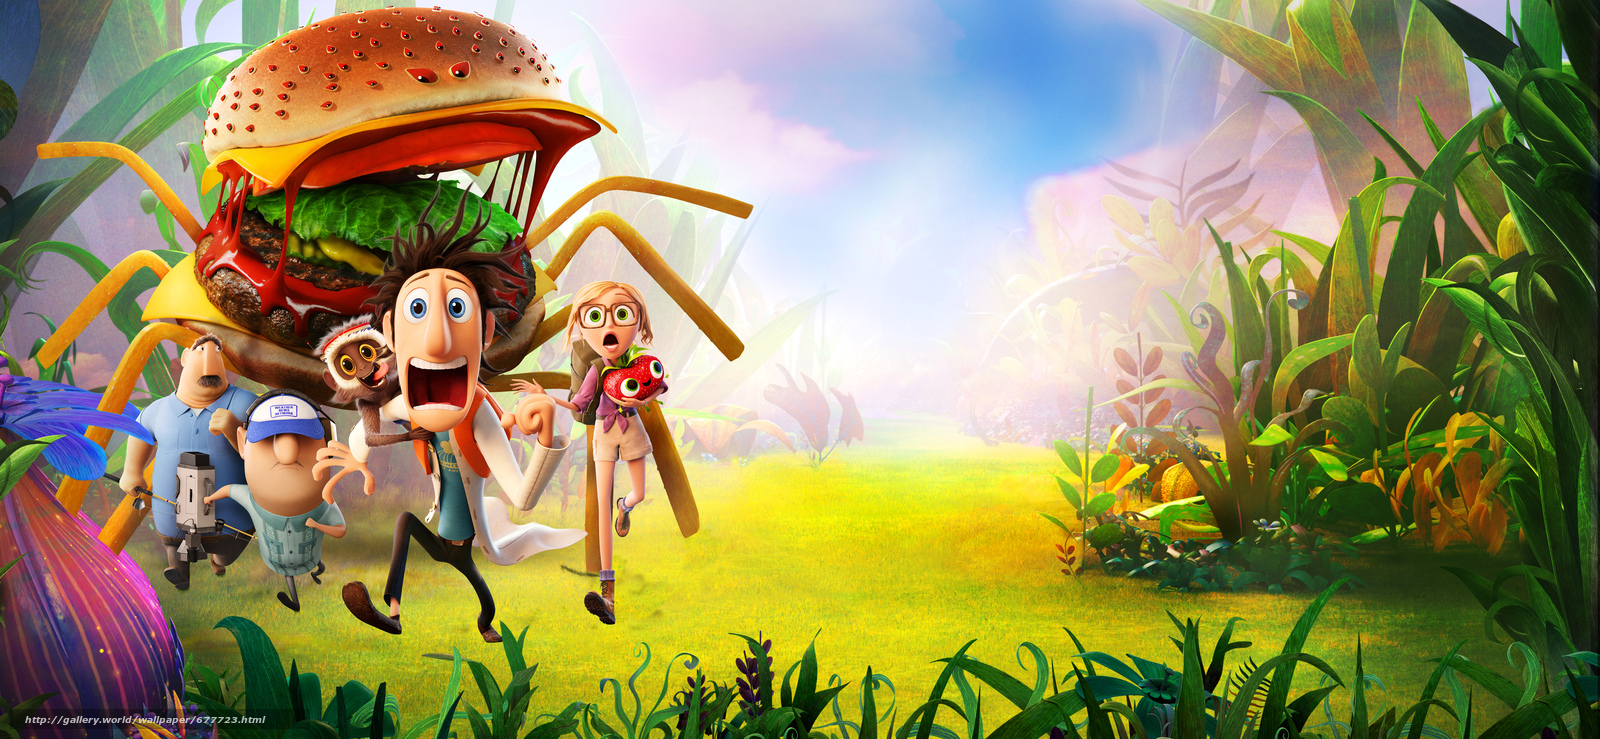 Clear ... 2 Revenge of GMOs, Cloudy with a Chance of Meatballs 2, Cartoon, Fantasy, comedy, family